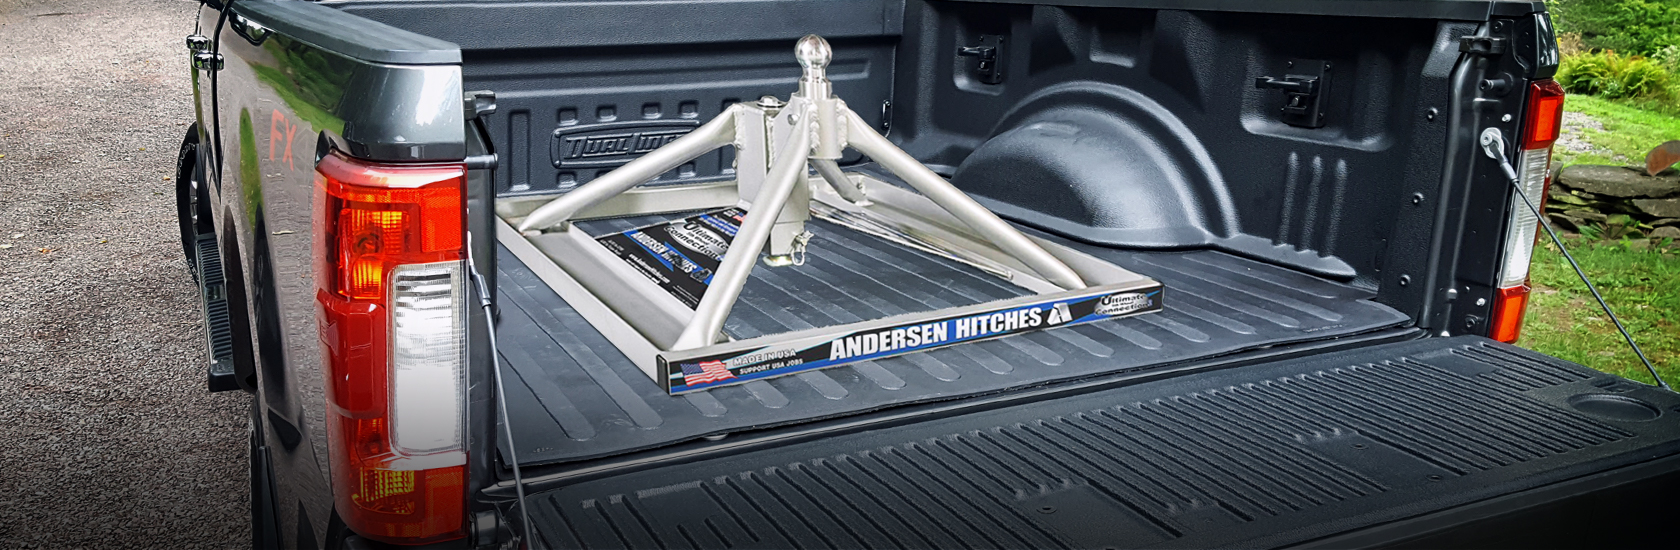 Save up to $250 on 5th Wheel Hitches